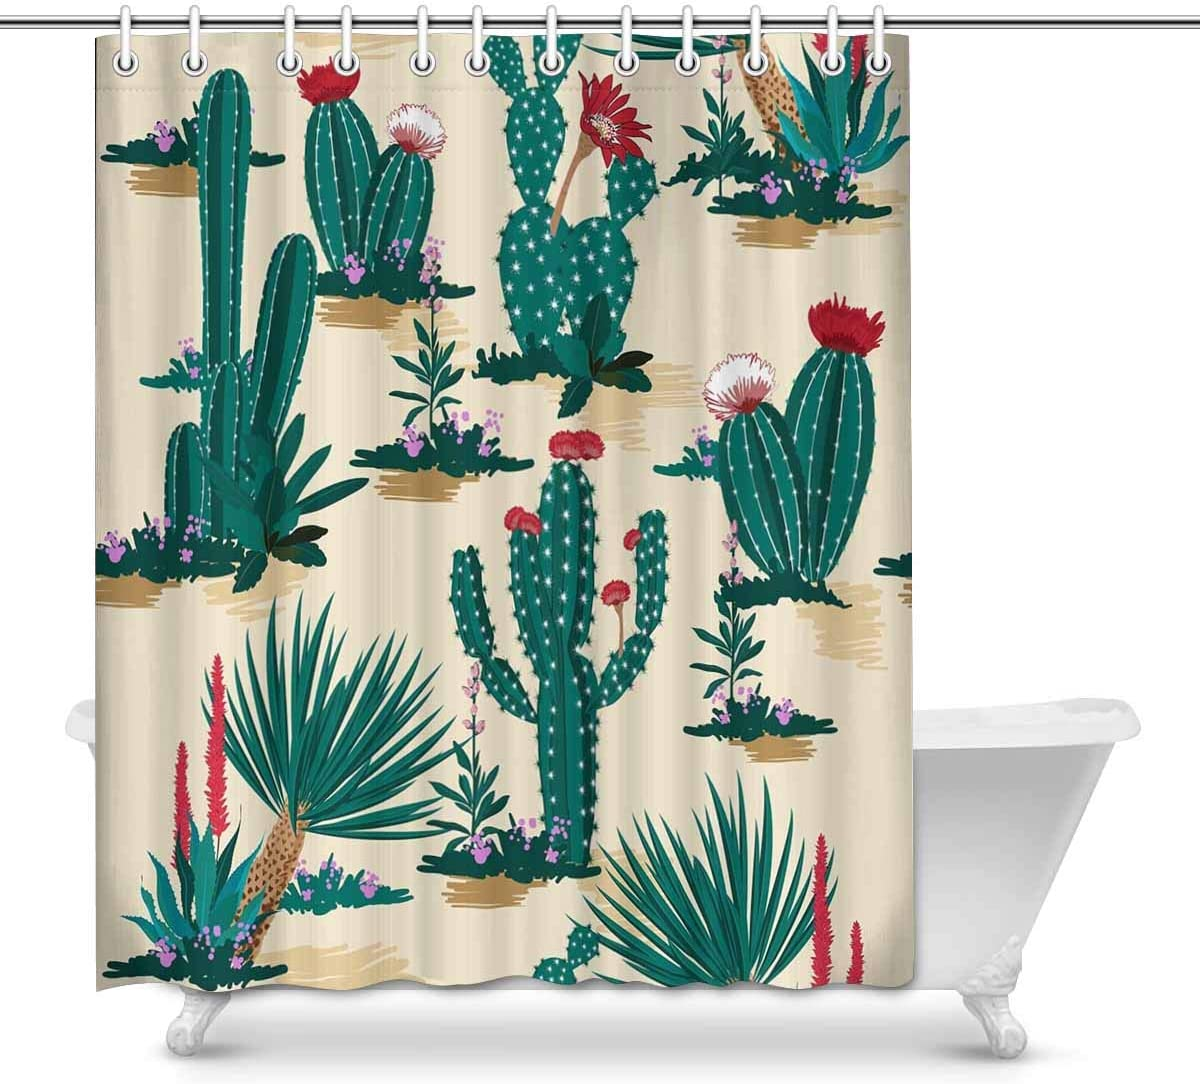 Amazon Com Interestprint Pattern Summer Cactus On Desert Prints Shower Curtain For Bathroom Decorations Sets 60 X 72 Inches Home Kitchen